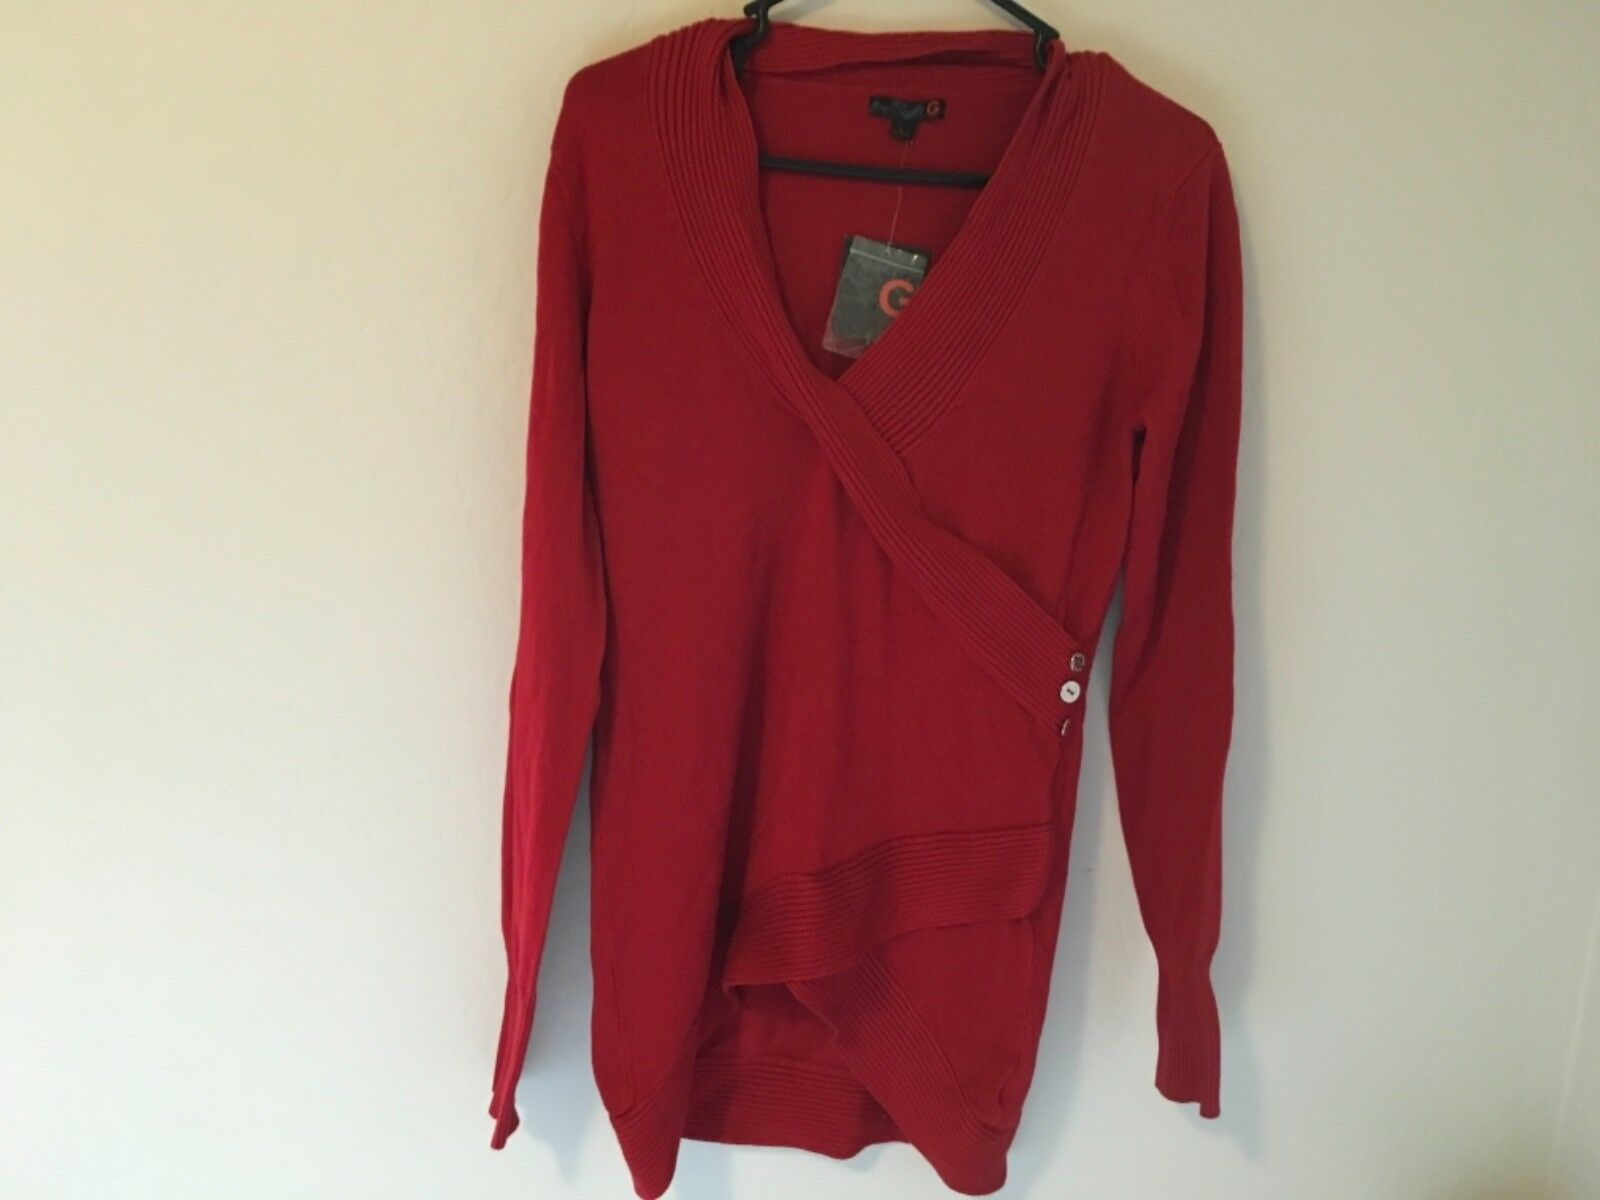 NWT G BY GUESS RARE SOLDOUT RED sweater L must have